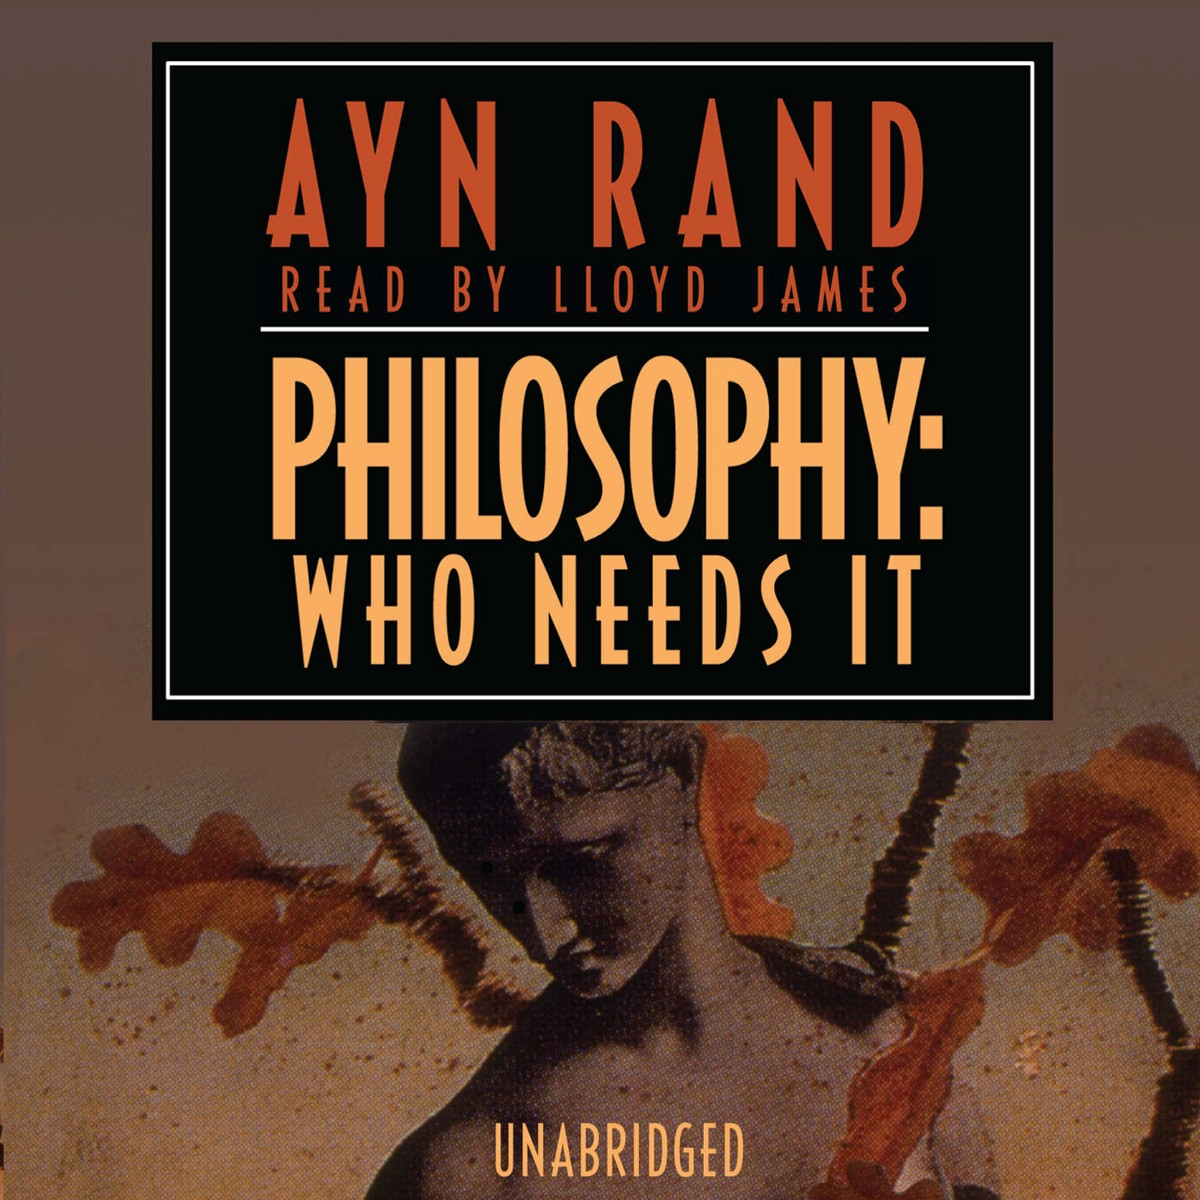 essays on ayn rands anthem robert mayhew Anthem: '38 and '46, by robert mayhew anthem and the individualist manifesto, by jeff britting anthem as a psychological fantasy, by tore boeckmann robert mayhew, a professor of philosophy at seton hall university, has edited three collections of essays about ayn rand's novels.